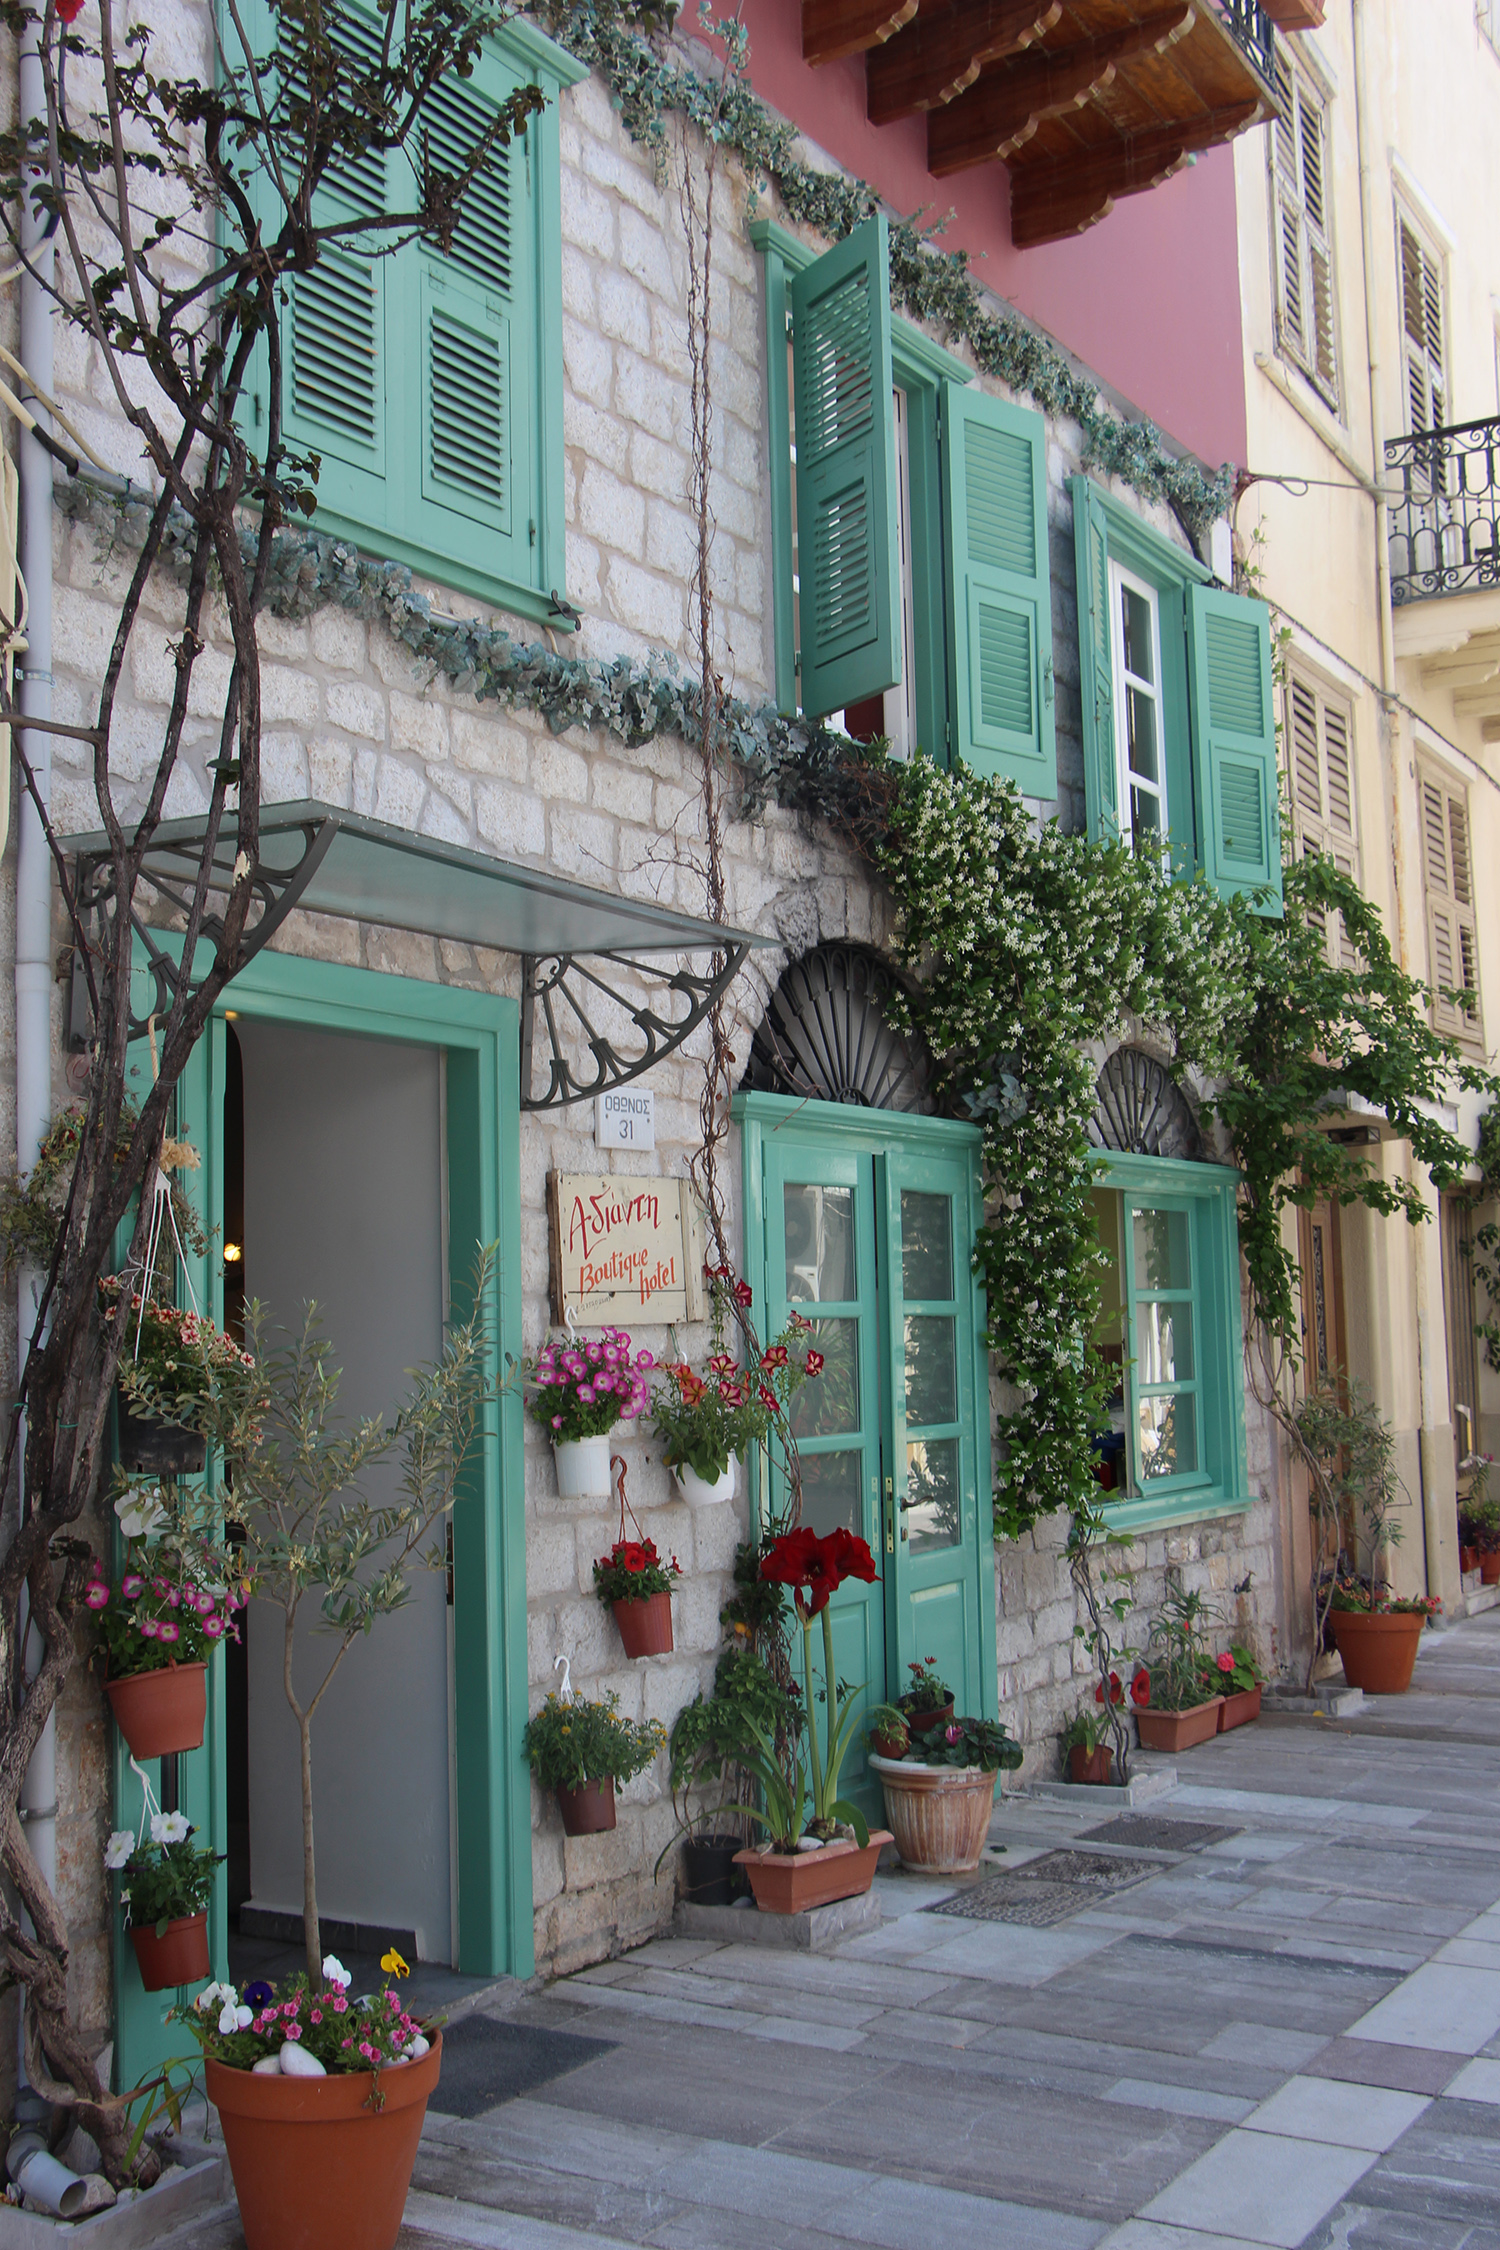 nafplio greece turquoise house pretty building